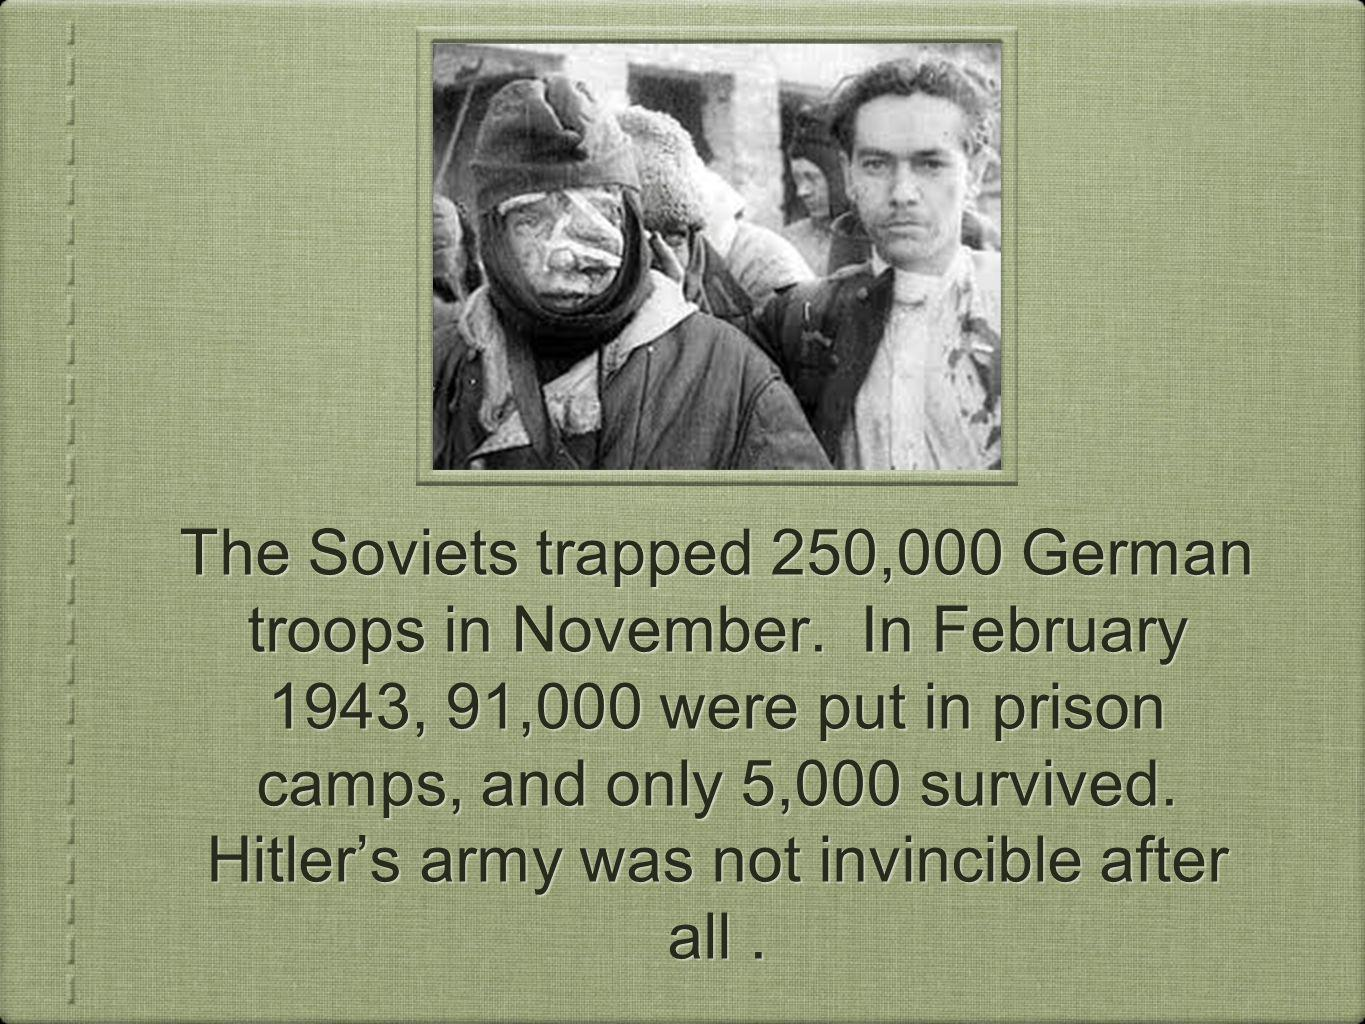 The Soviets trapped 250,000 German troops in November.